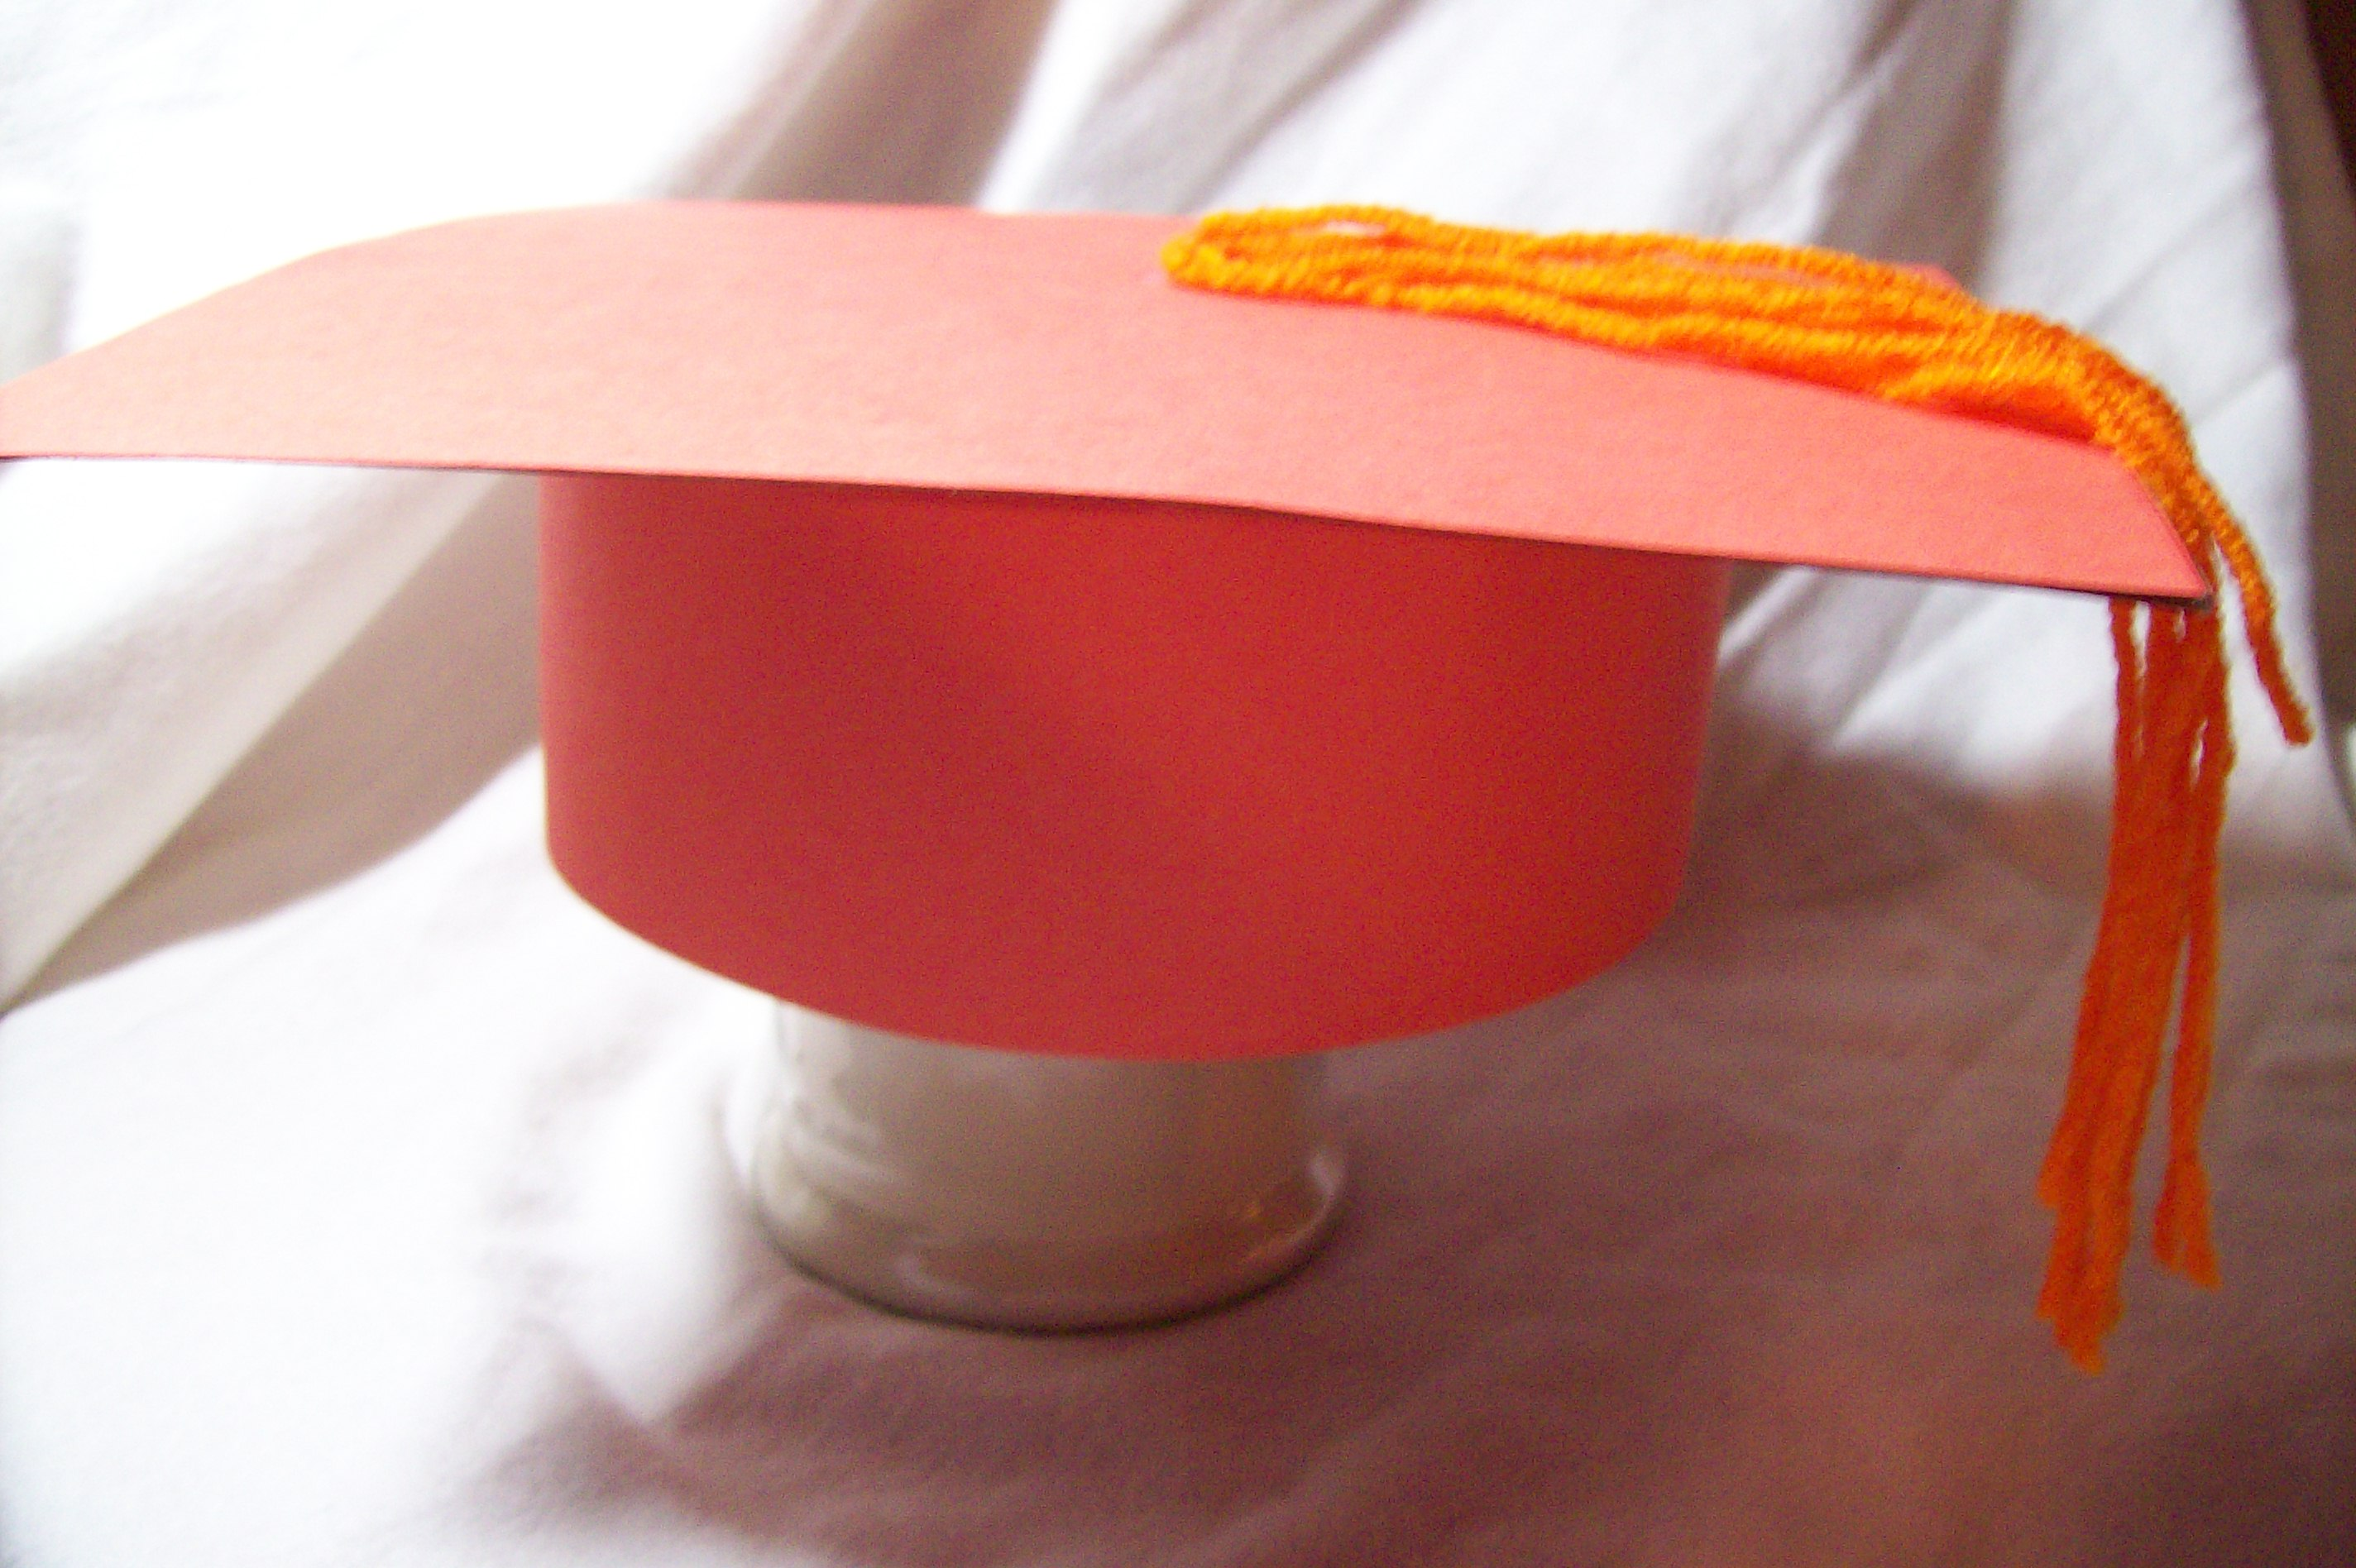 paper graduation cap This paper graduation cap is a nice craft to make for preschool graduation, or to add extra decoration to a graduation gift.